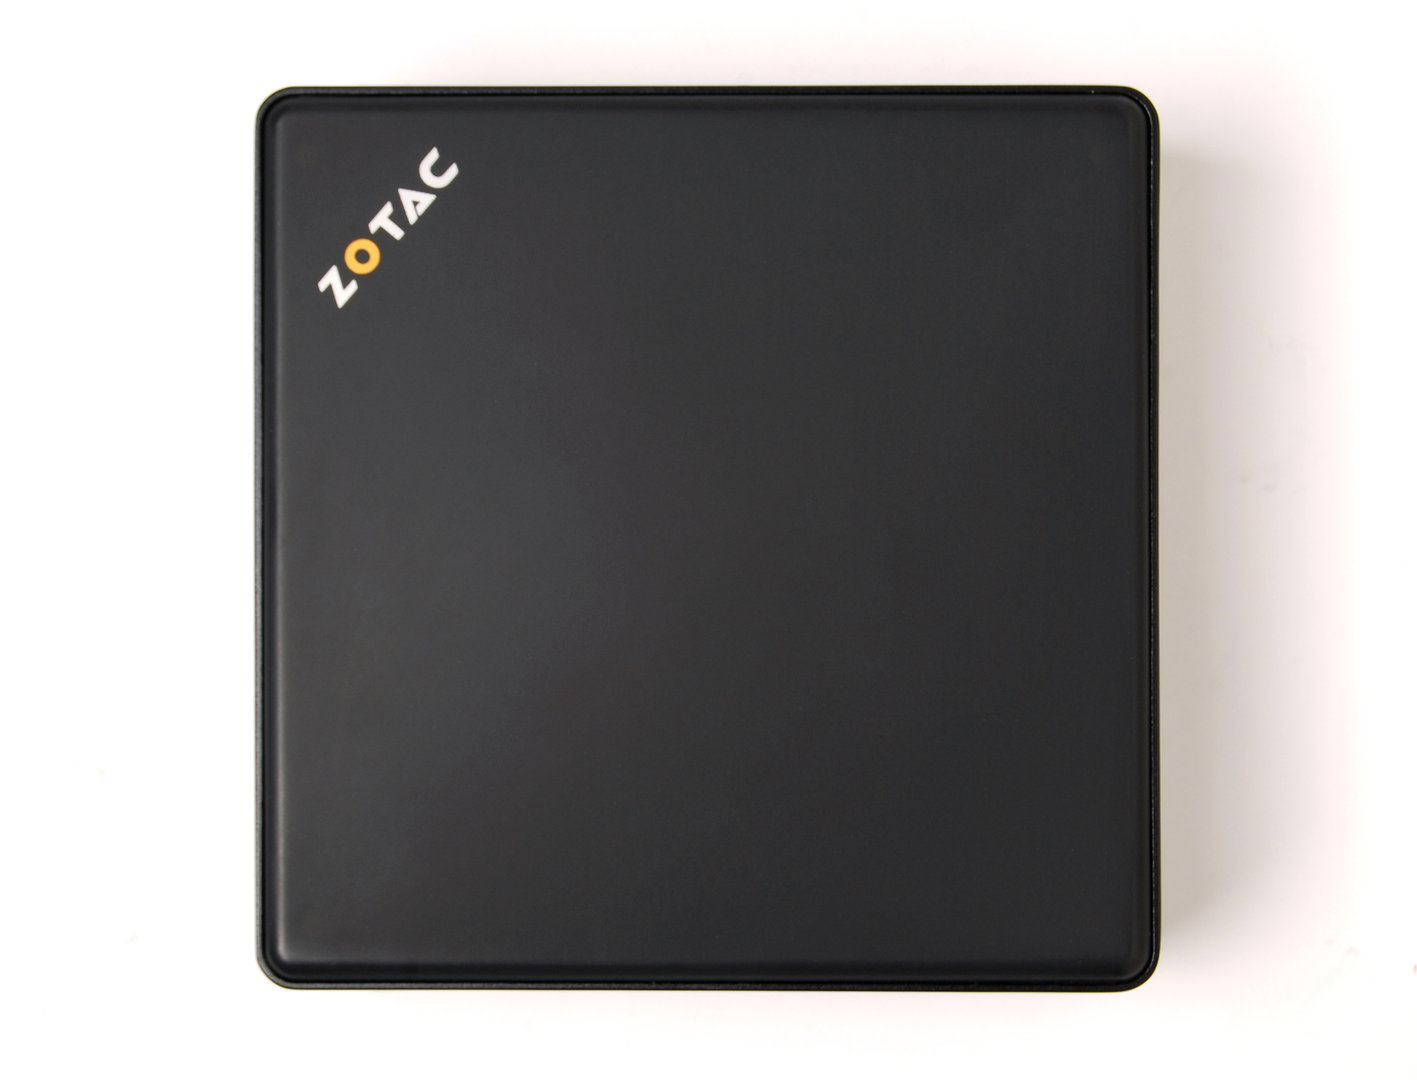 Zotac StreamBox